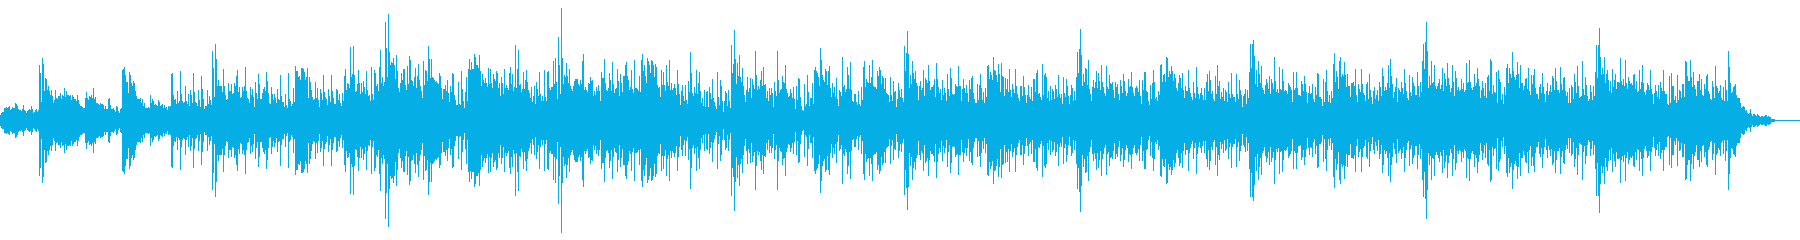 A fashionable night melody's reproduced waveform